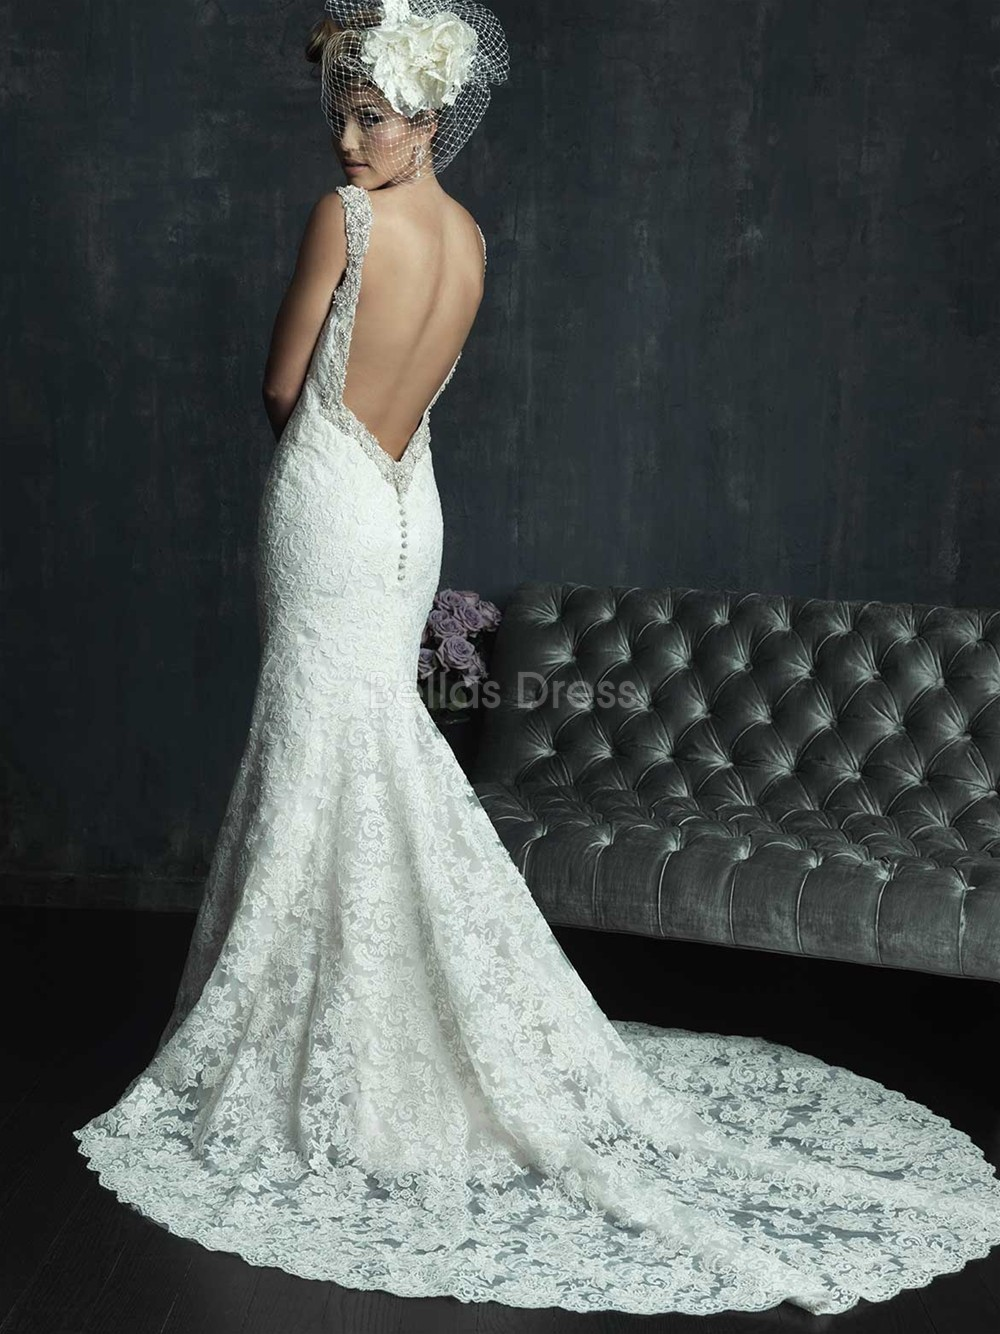 Tight fitting lace wedding dress